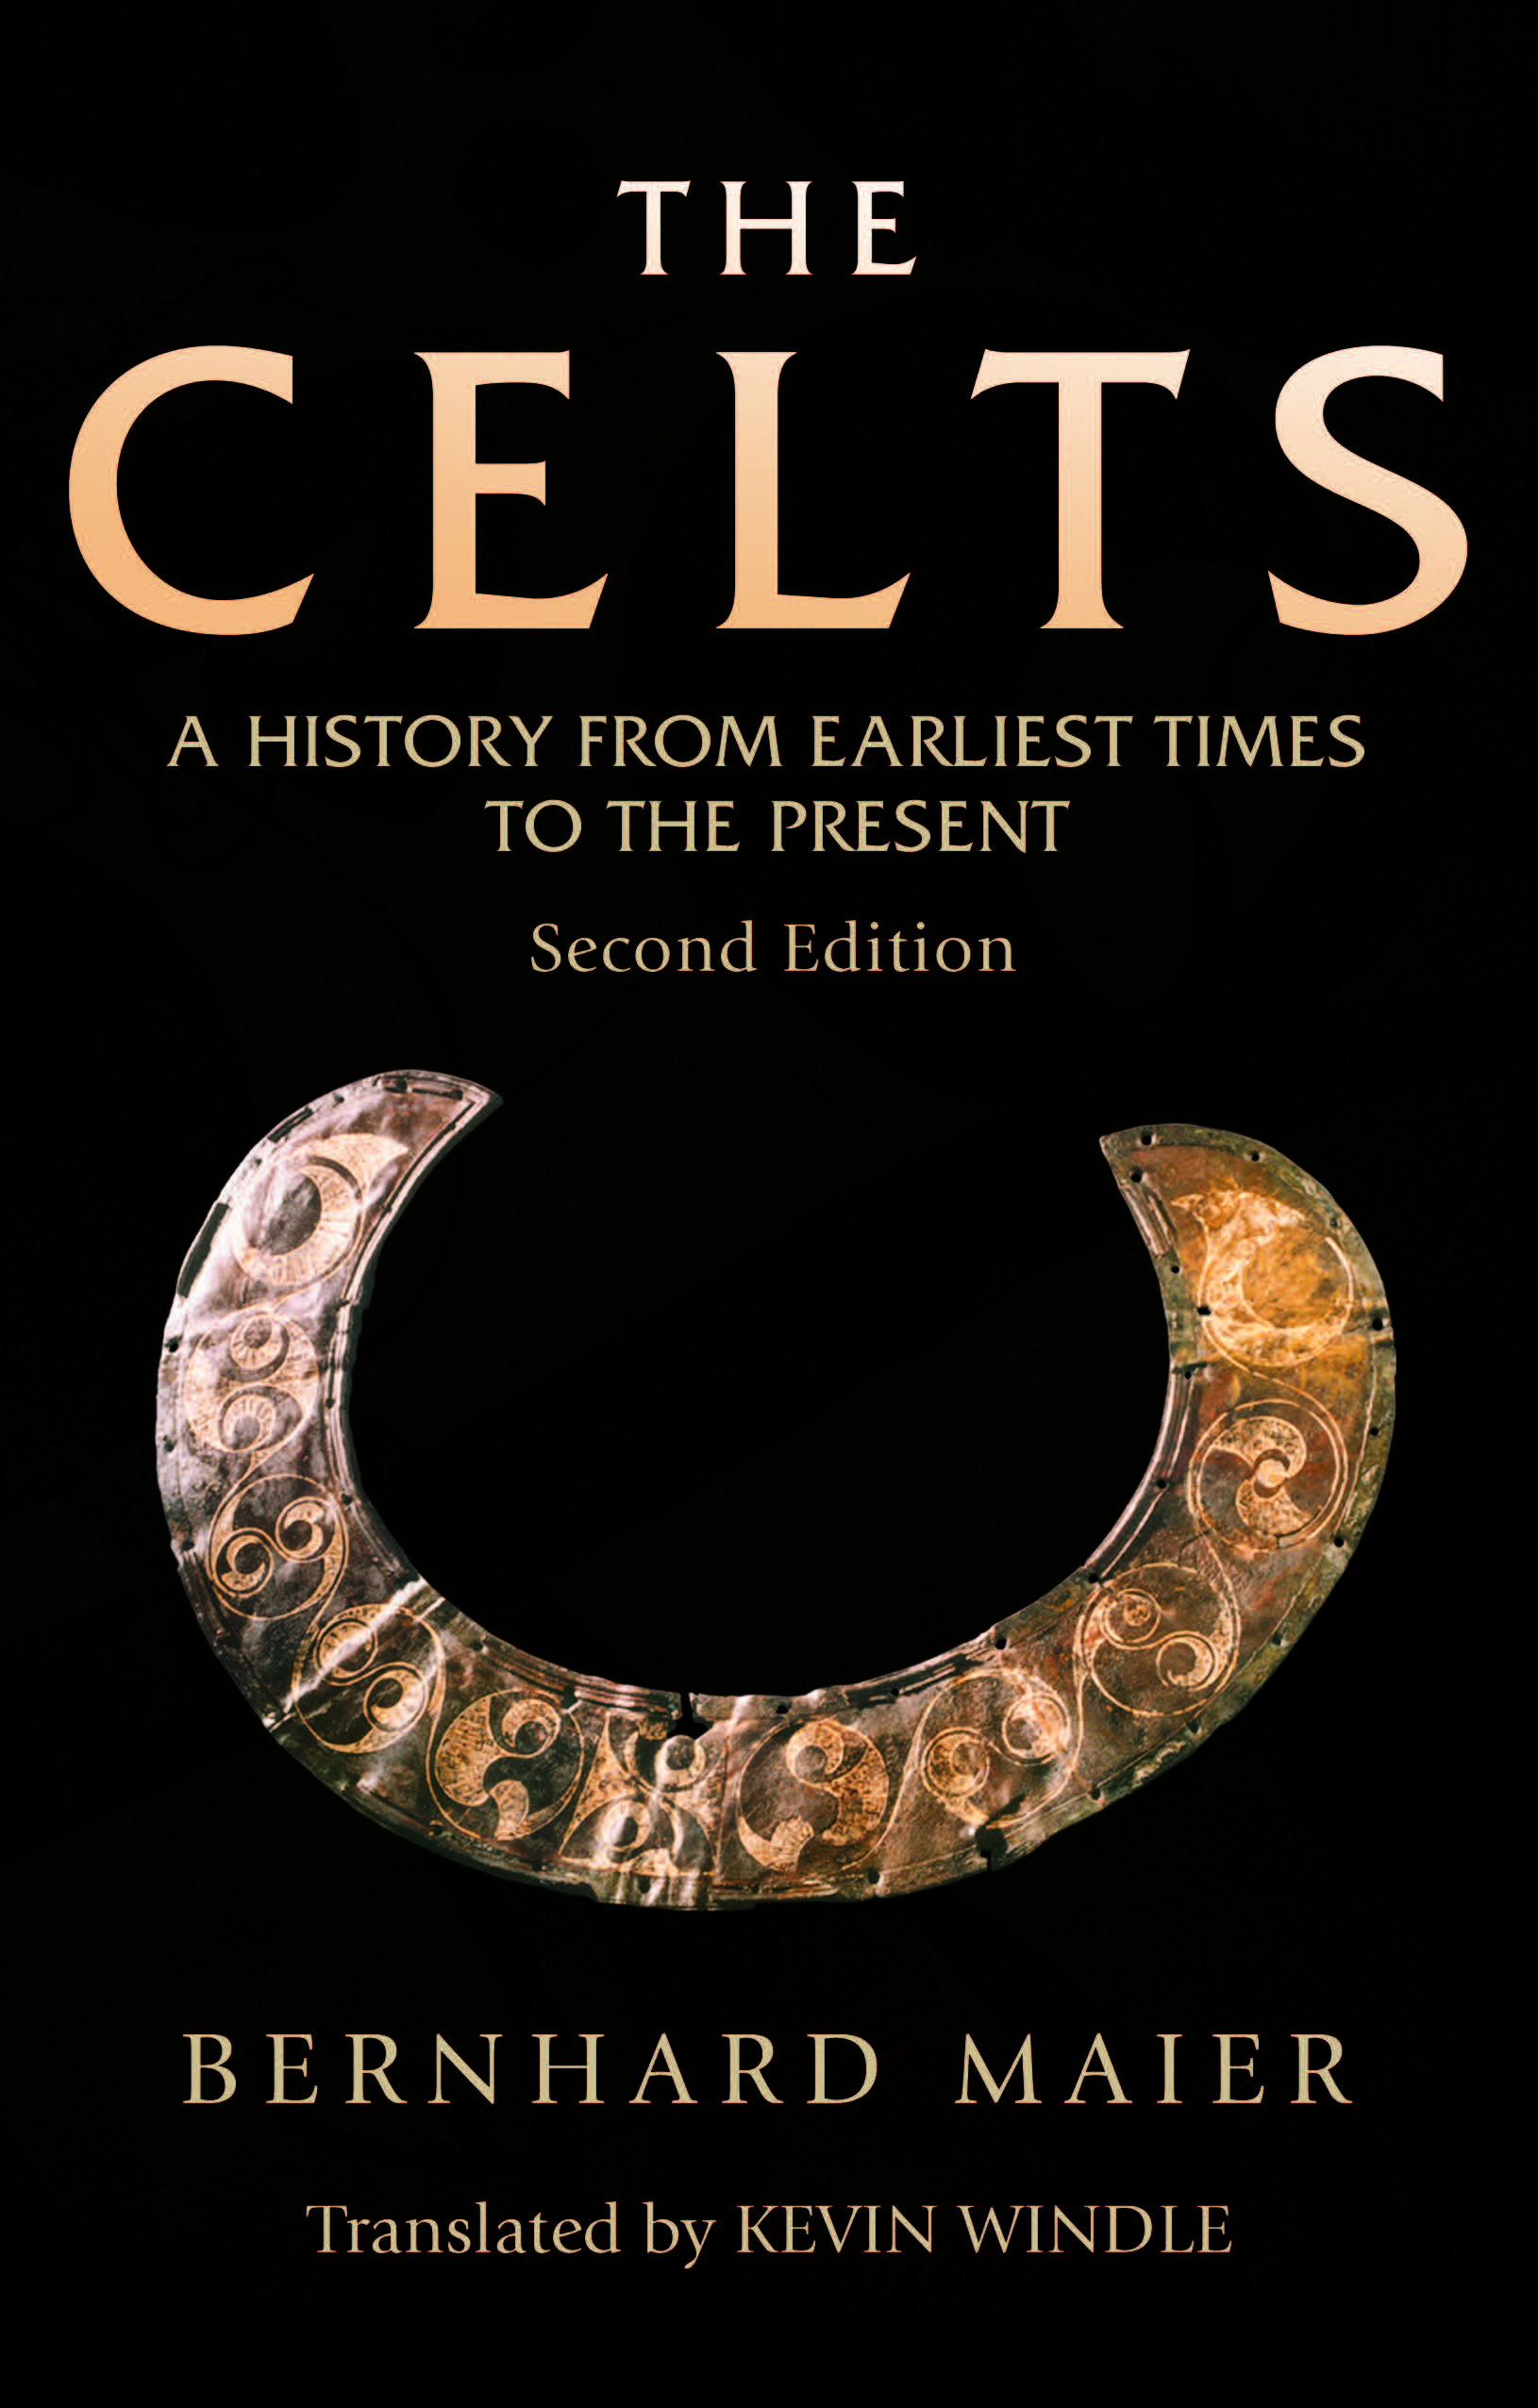 The Beginnings of Celtic History